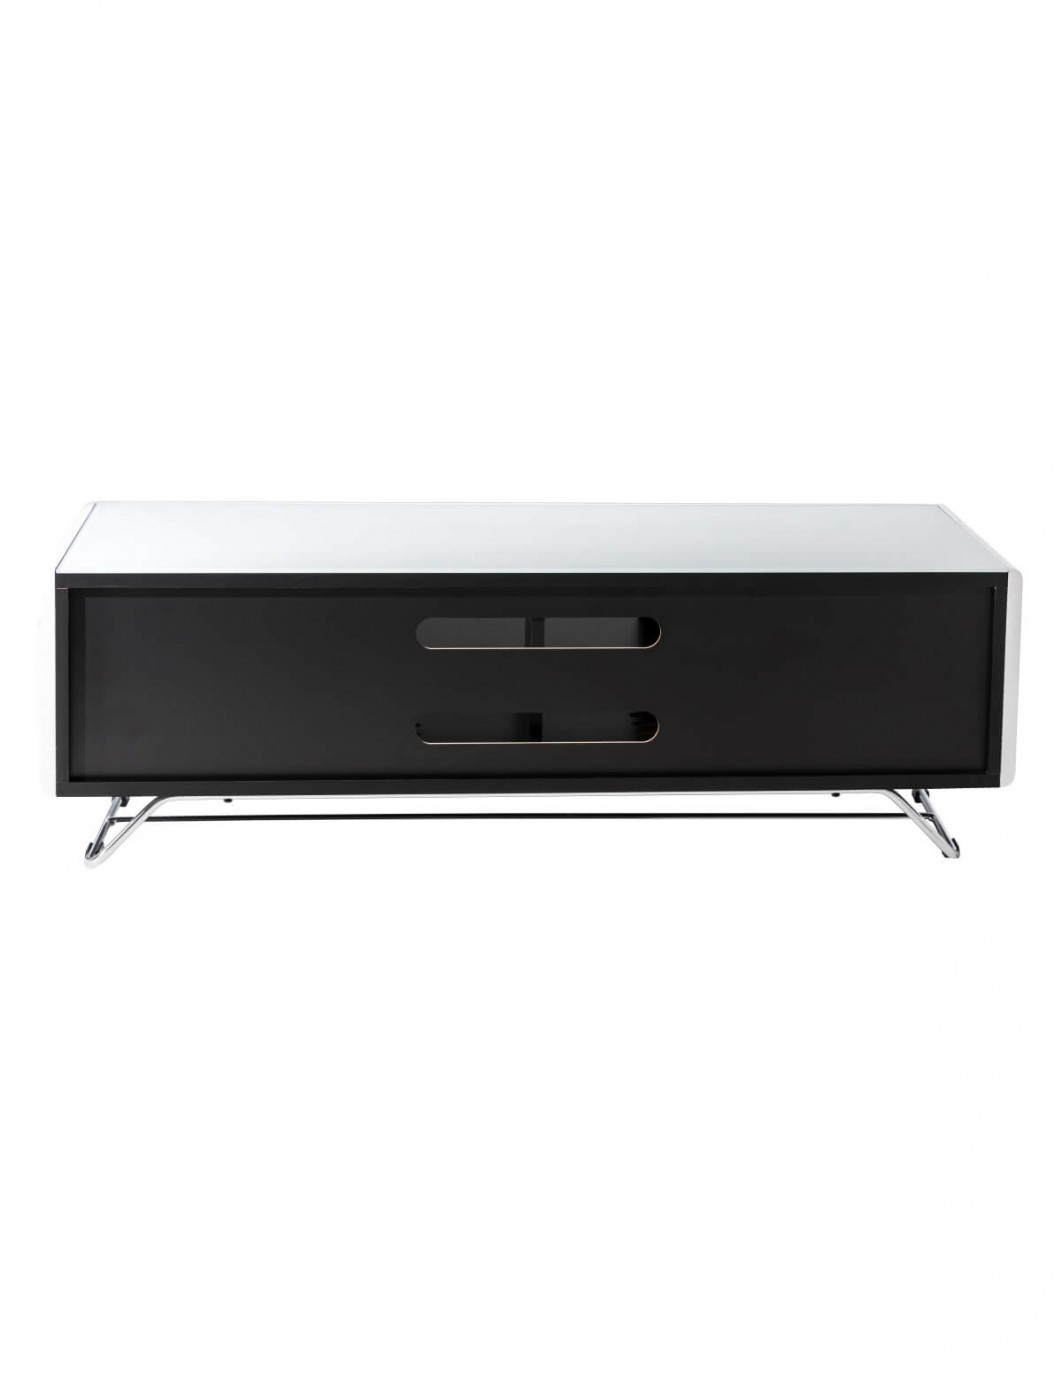 tv stand with mount assembly instructions